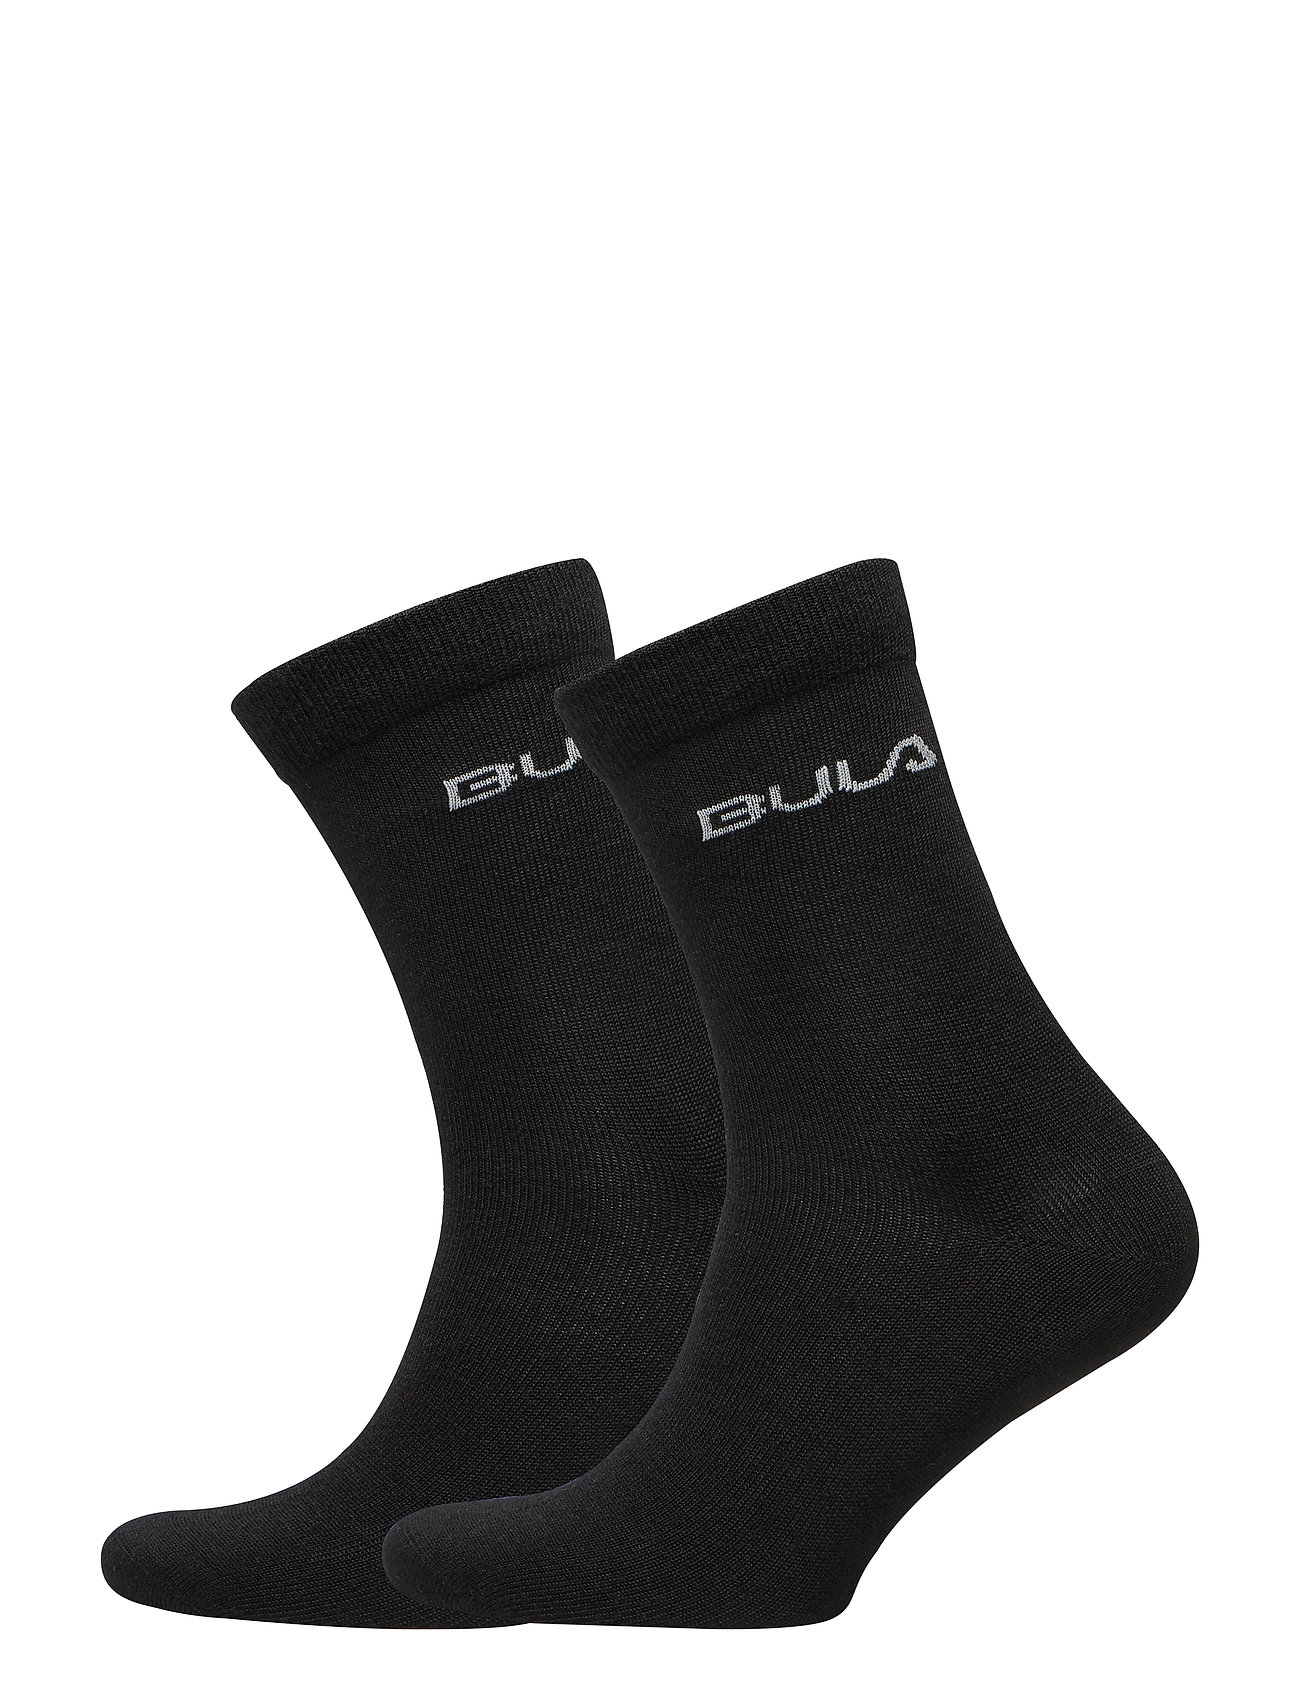 Bula 2PK LIGHT WOOL SOCK - BLACK